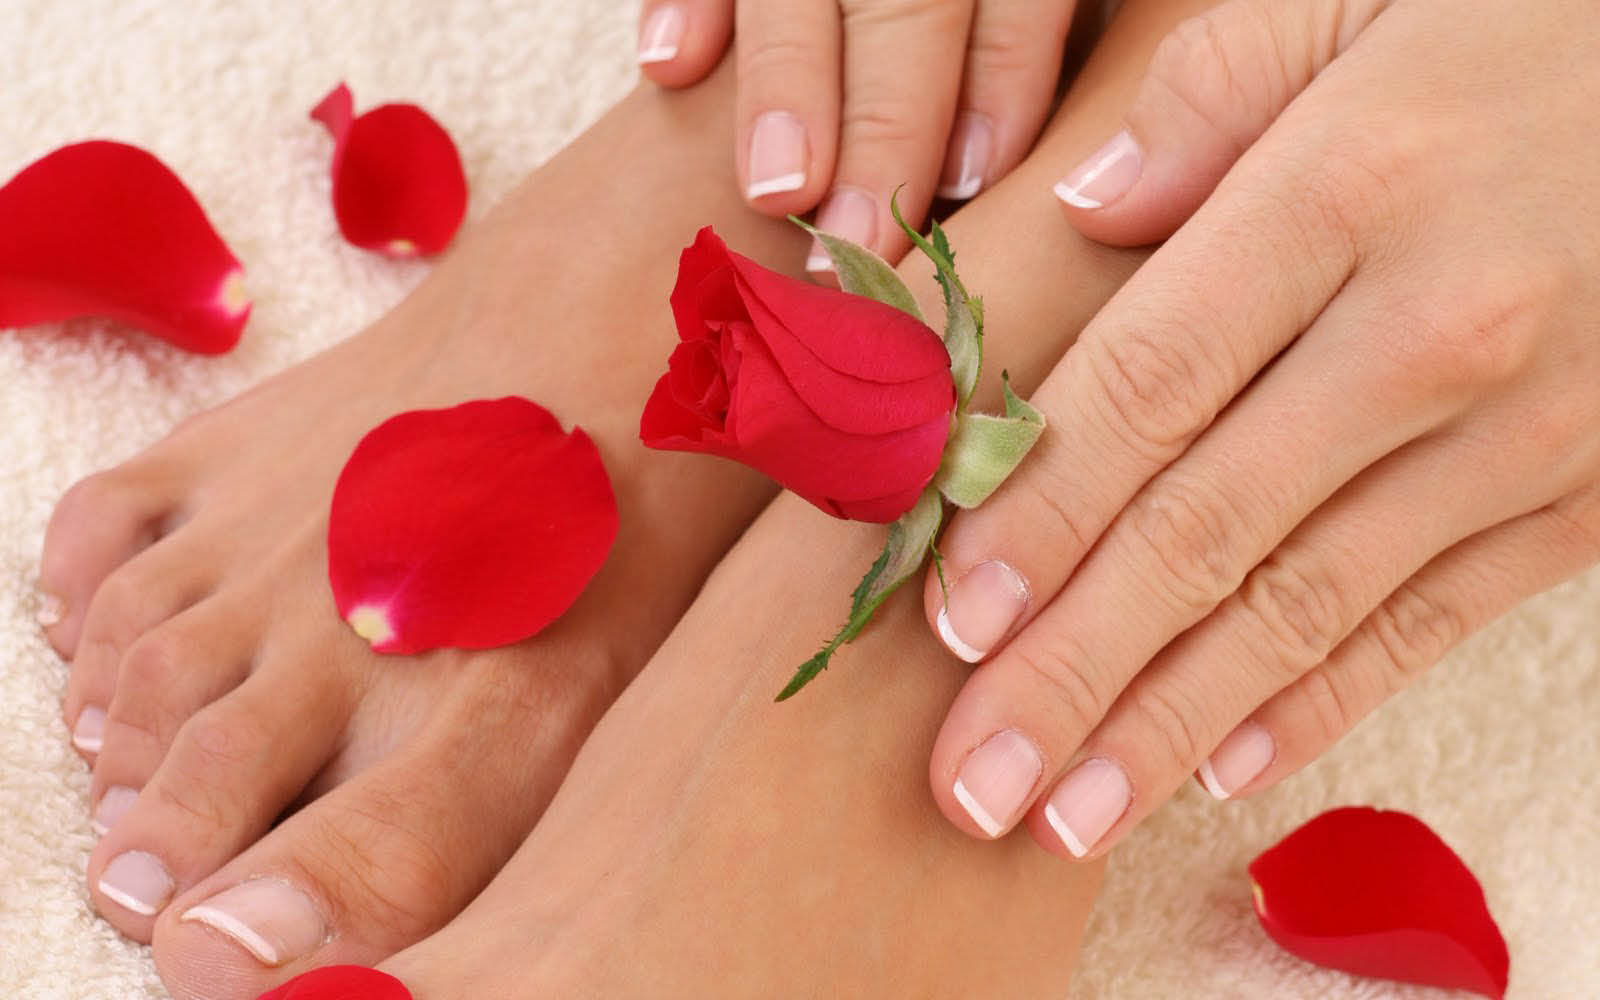 Picture of a natural look Manicure & Pedicure with red rose petals from Nailology Spa in Kansas City